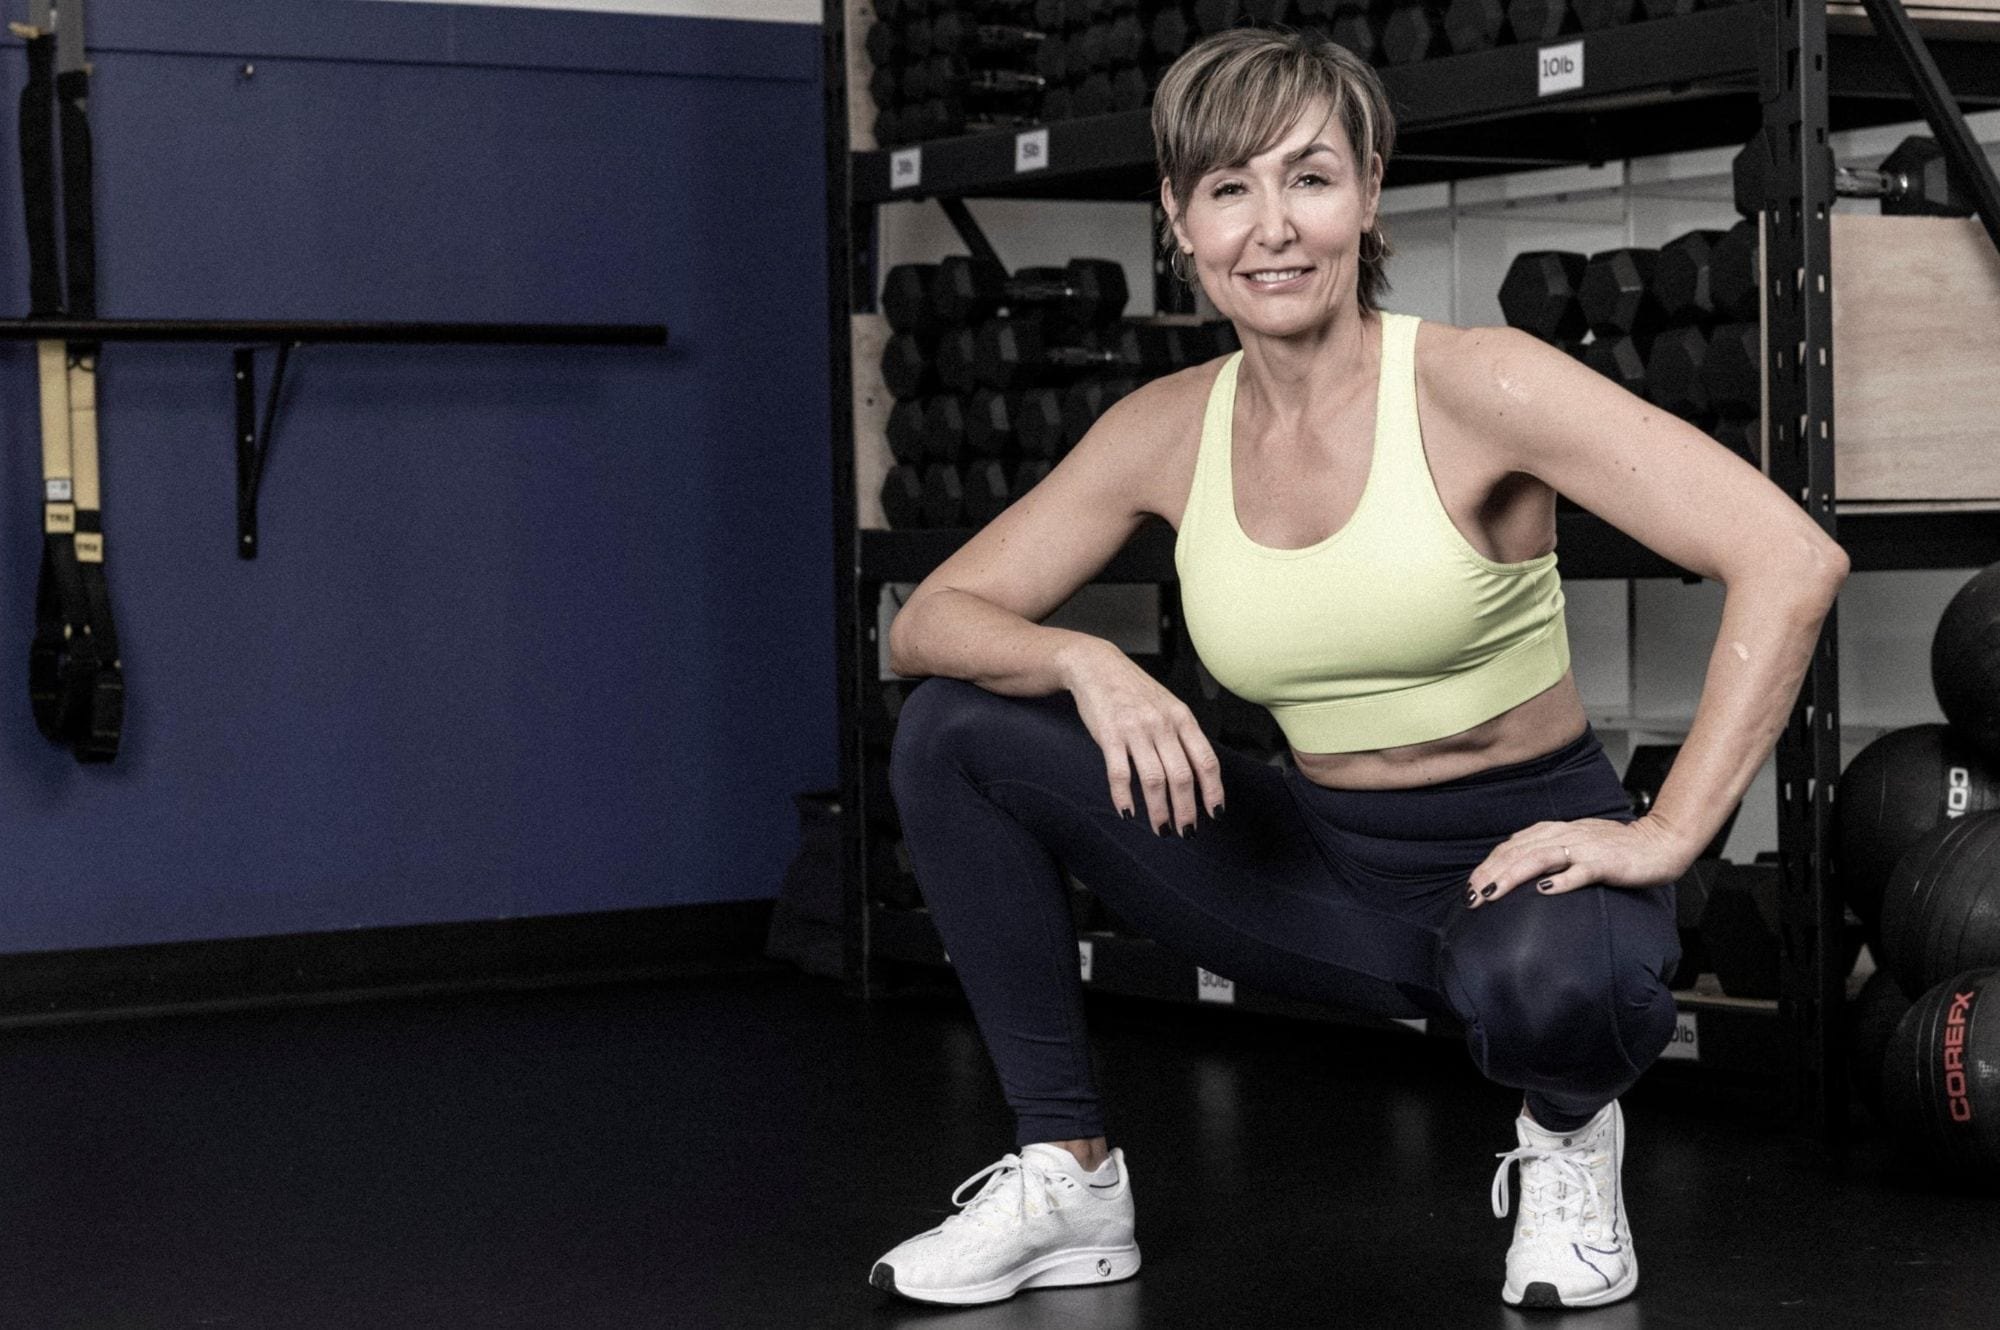 Fit Women At 40 : To help you navigate this intimidating process, we created this women's pants size chart and fit guide.